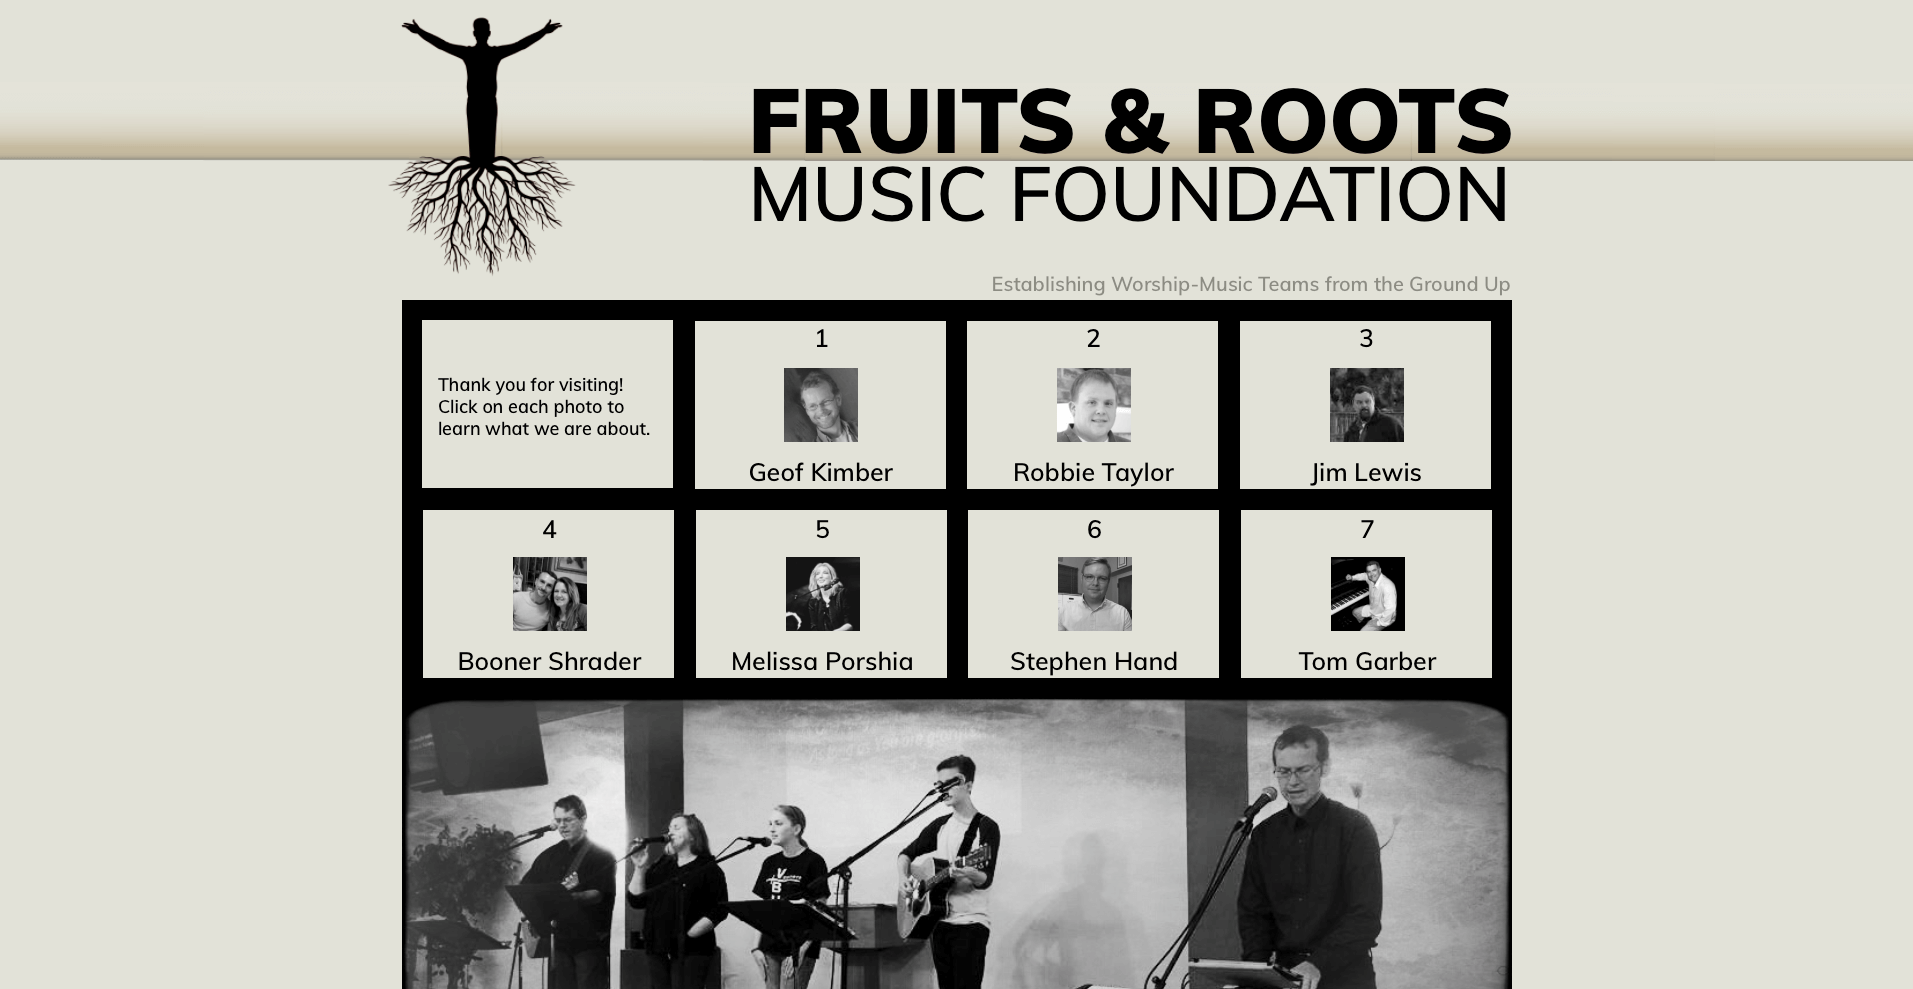 Fruits & Roots Website